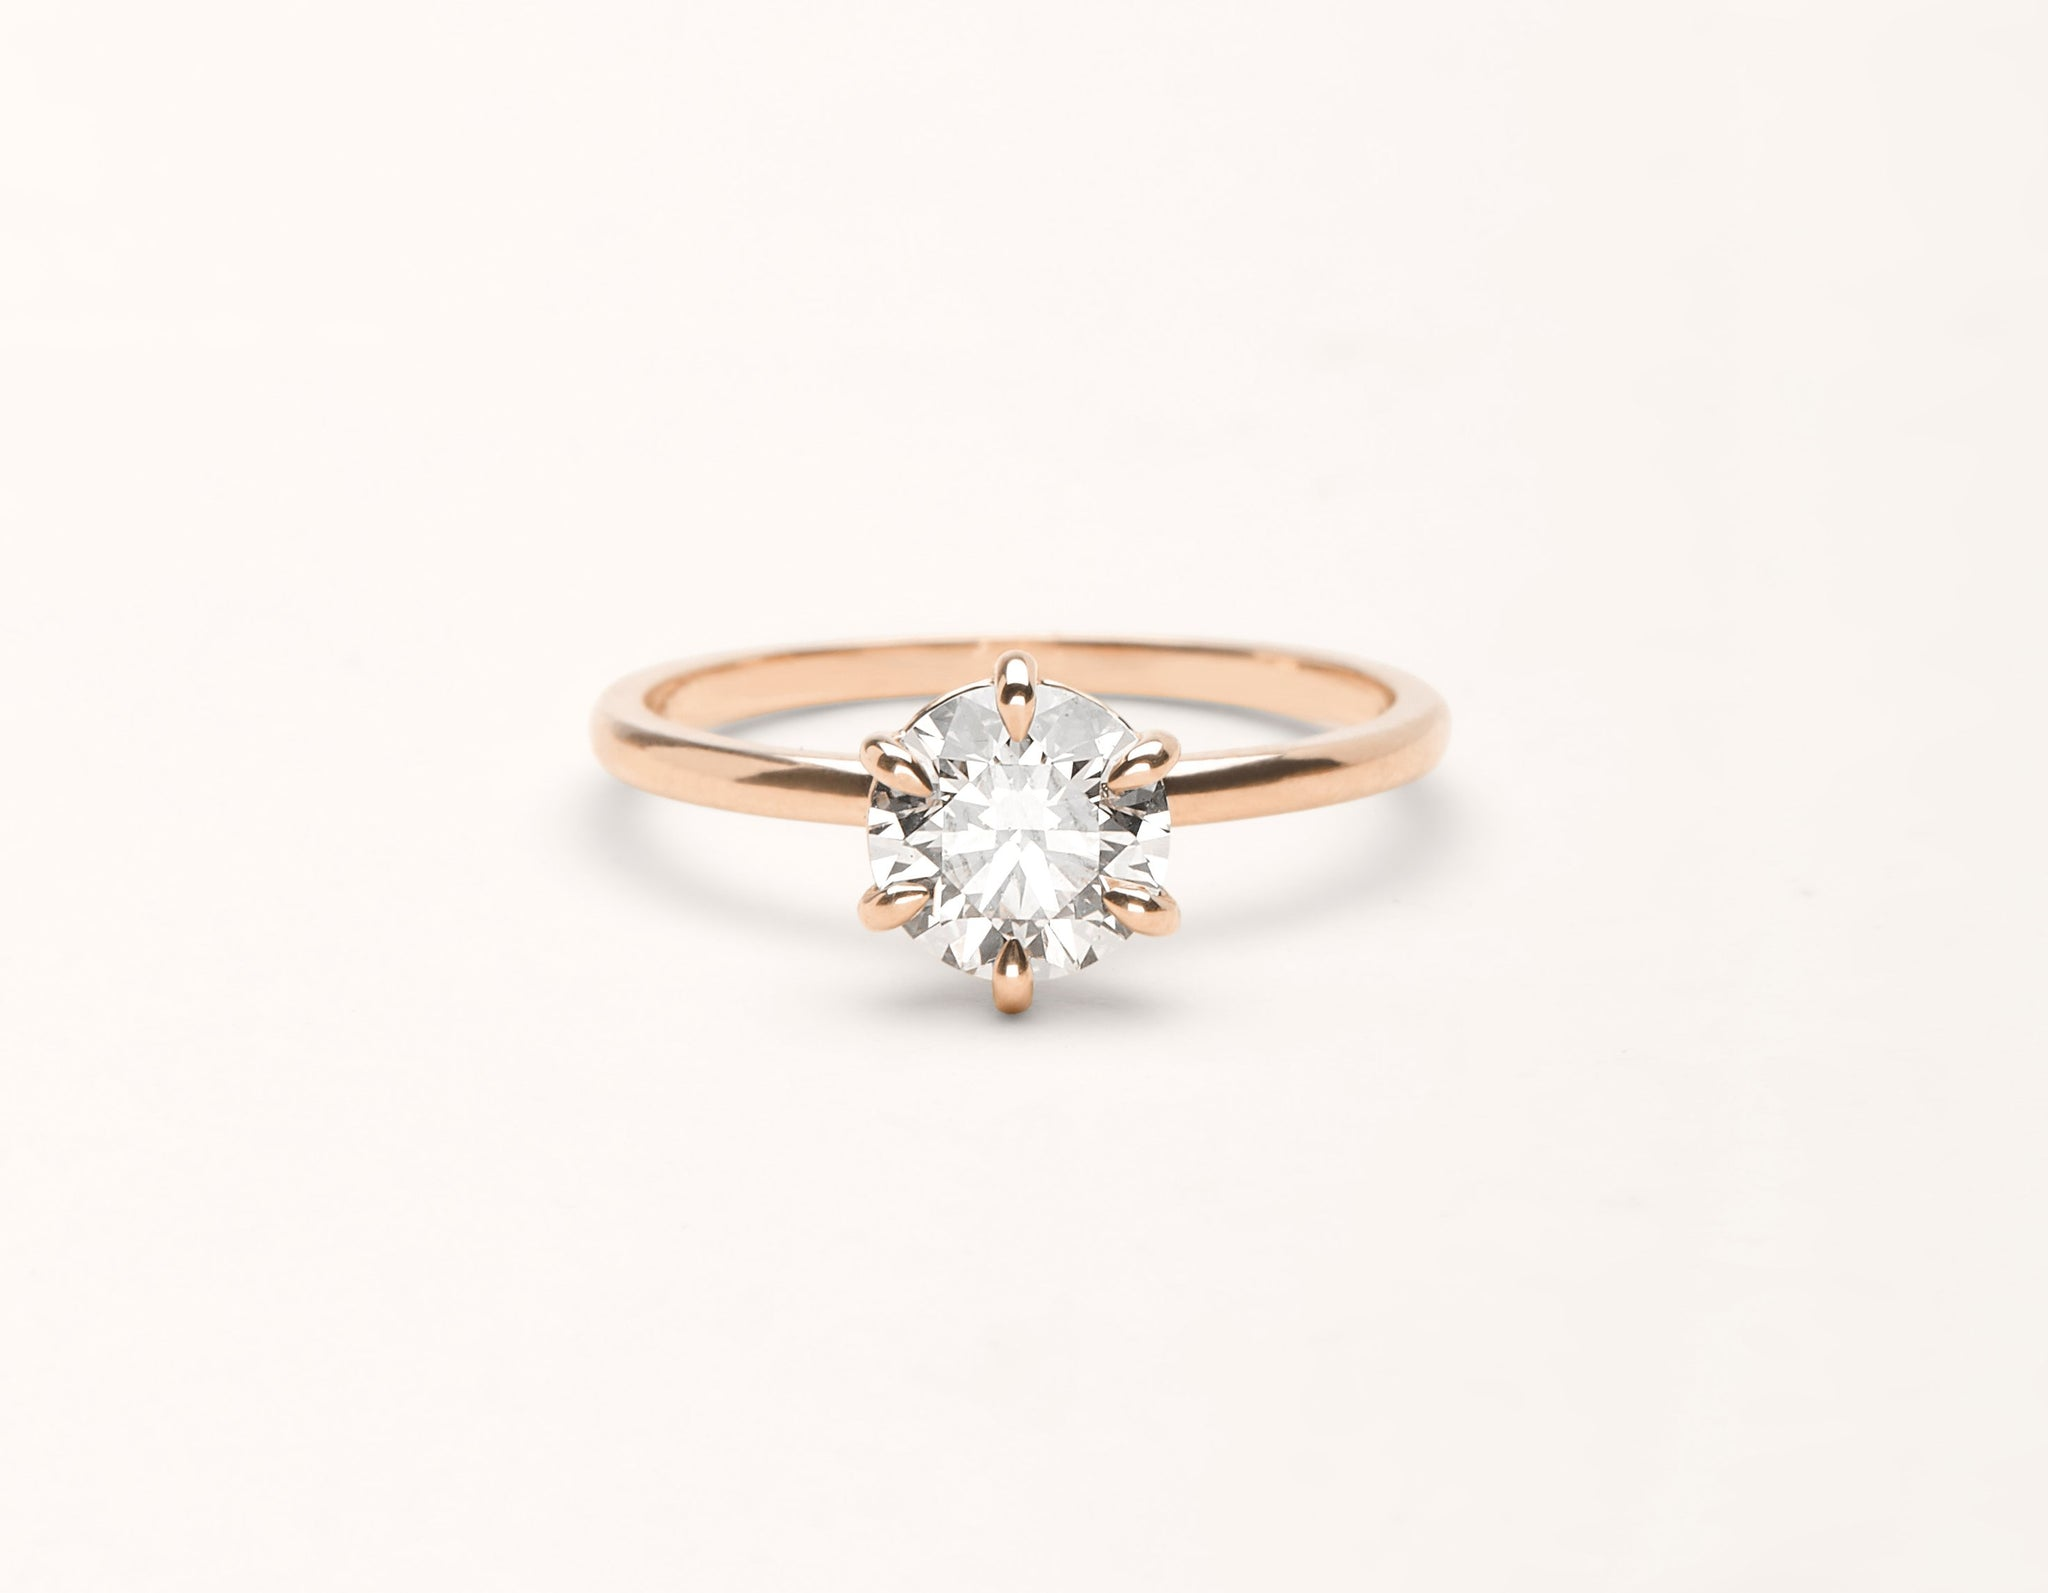 Minimalist 18k solid rose gold The Solitaire engagement ring round brilliant cut 1 ct diamond Vrai and Oro